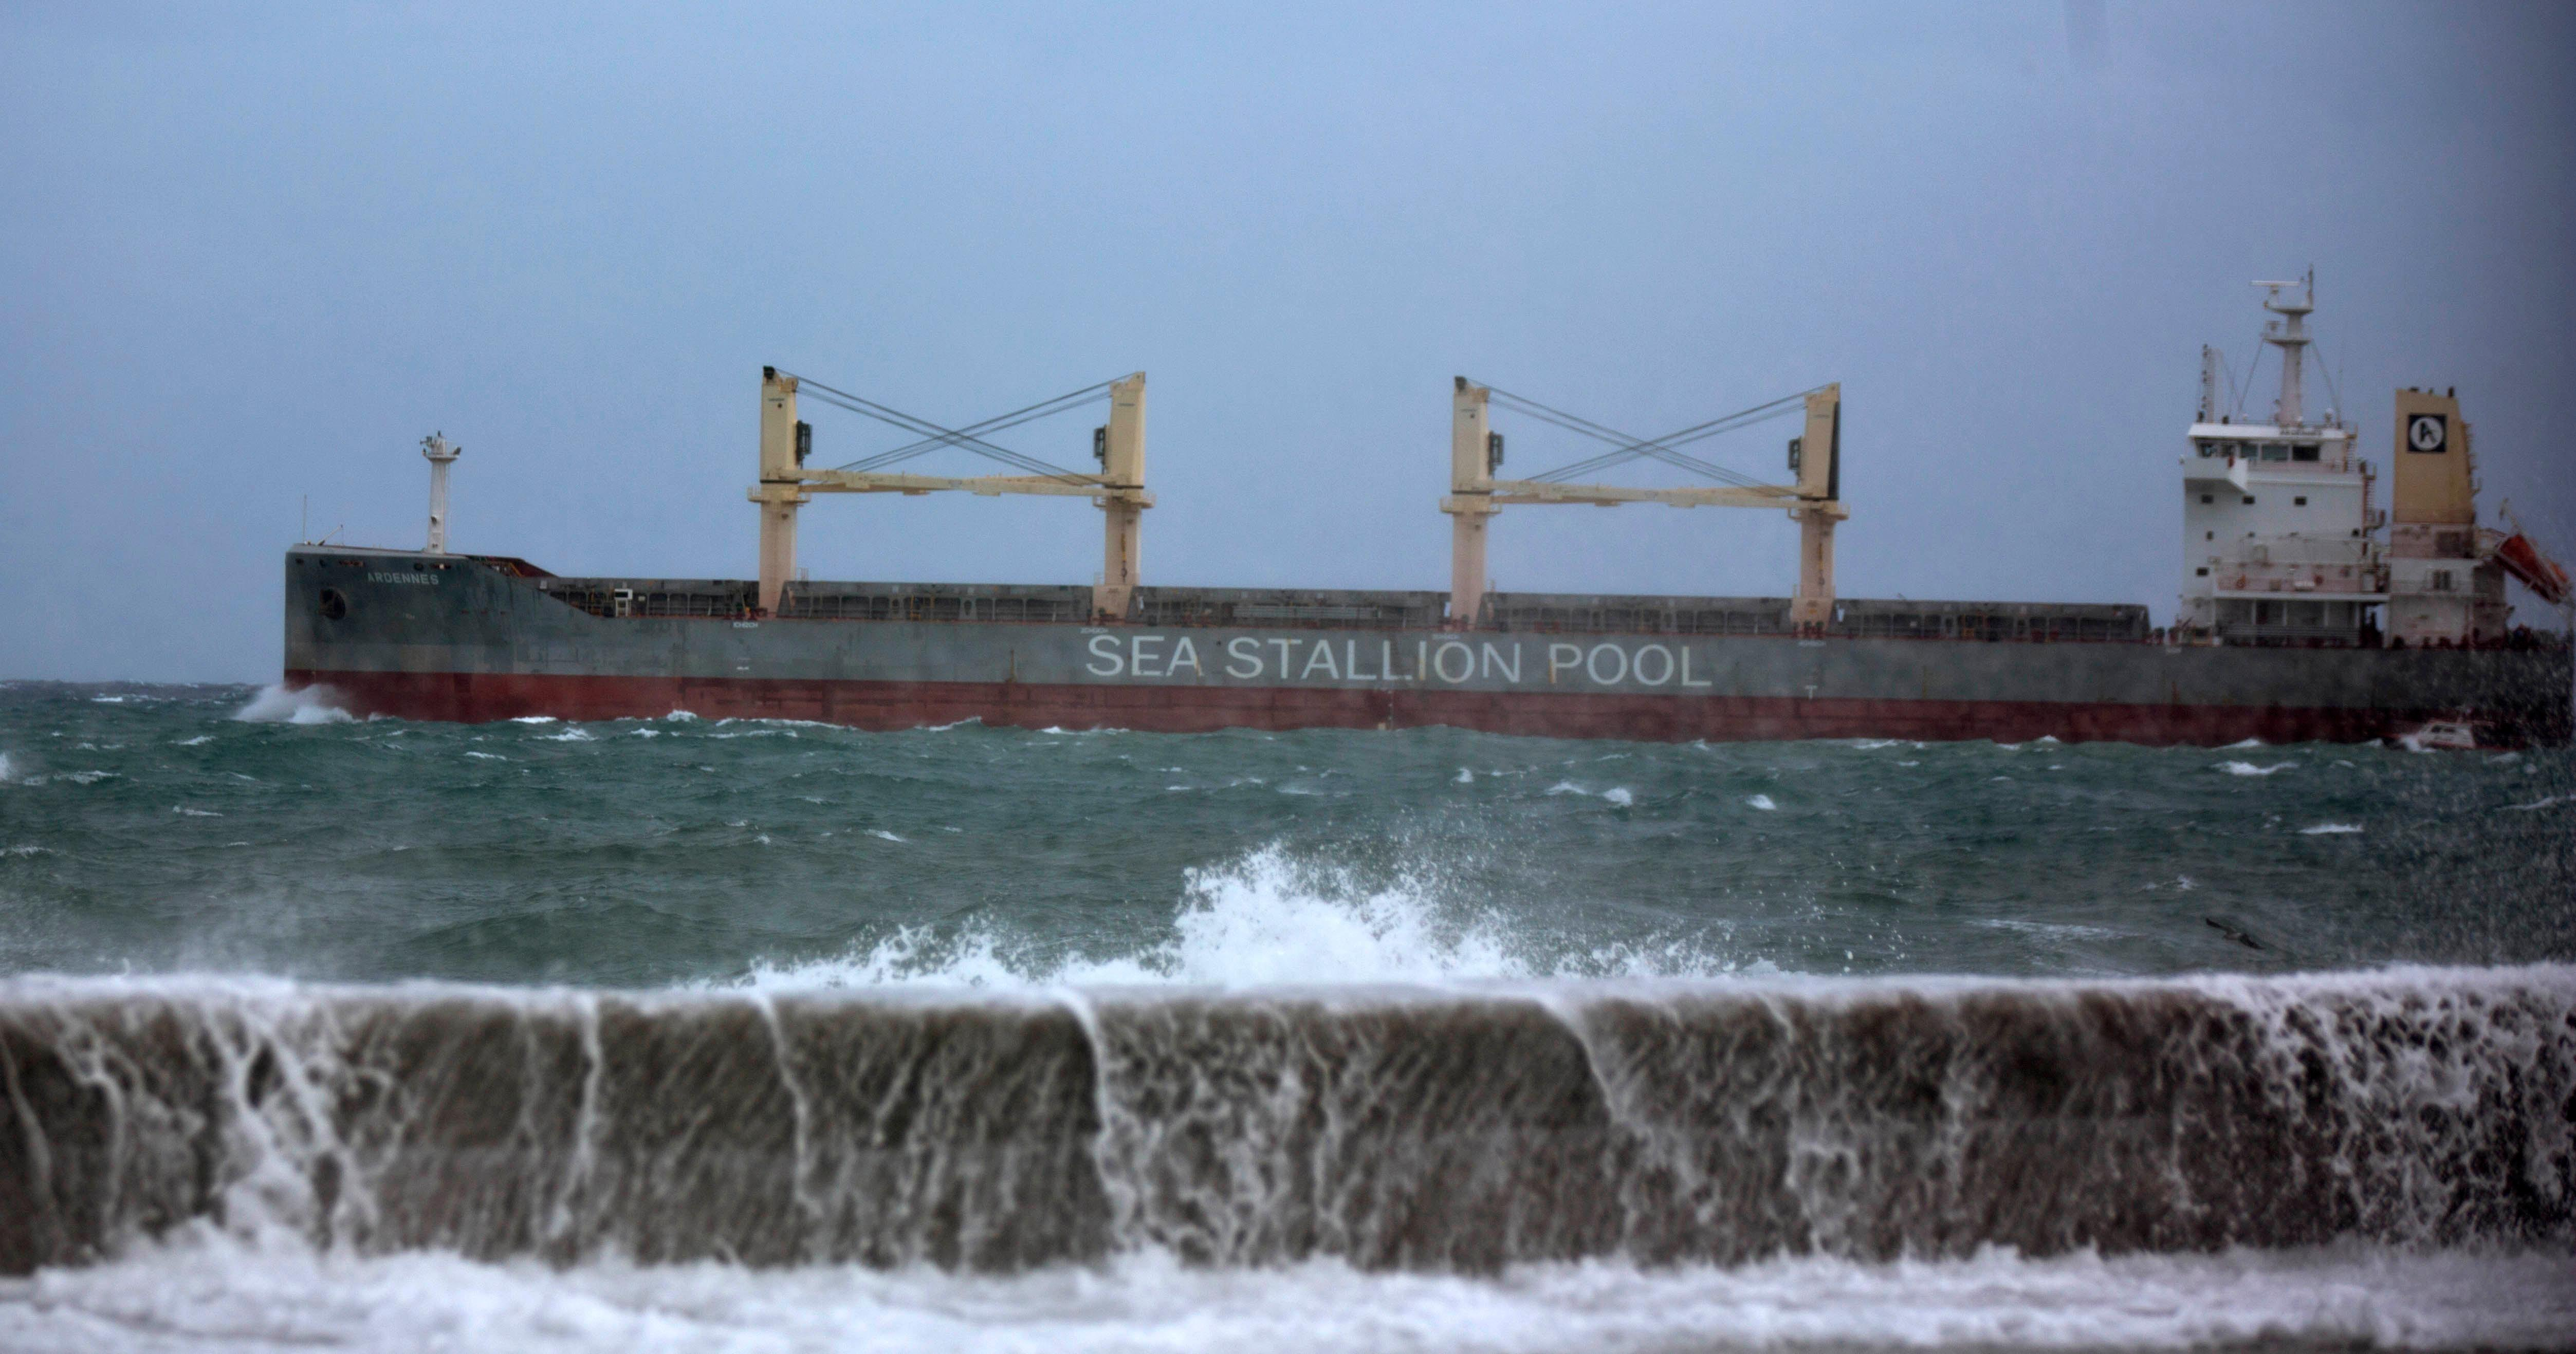 A sea wall is breeched by overflow as a bulk carrier leaves the bay of Havana, Cuba, Saturday, Sept. 9, 2017. There were no reports of deaths or injuries after heavy rain and winds from Hurricane Irma lashed northeastern Cuba. (AP Photo/Ramon Espinosa)